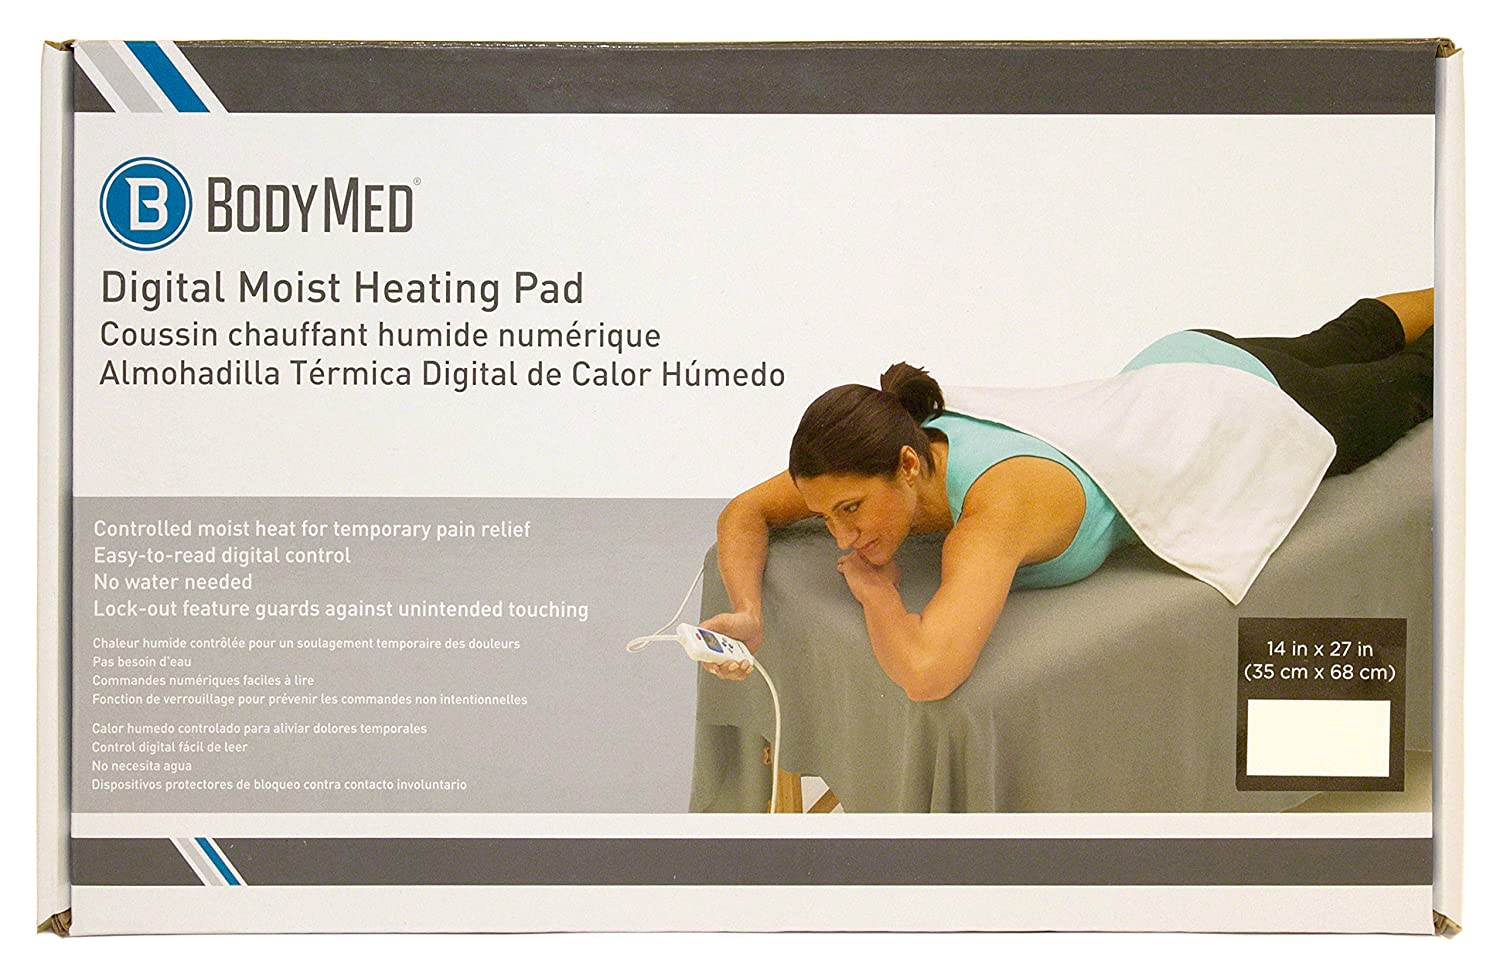 Amazon.com: BodyMed Digital Moist Heating Pad with Auto Shut Off Heating Pad for Neck and Shoulders, Back Pain and Muscle Pain Relief: Health & Personal ...